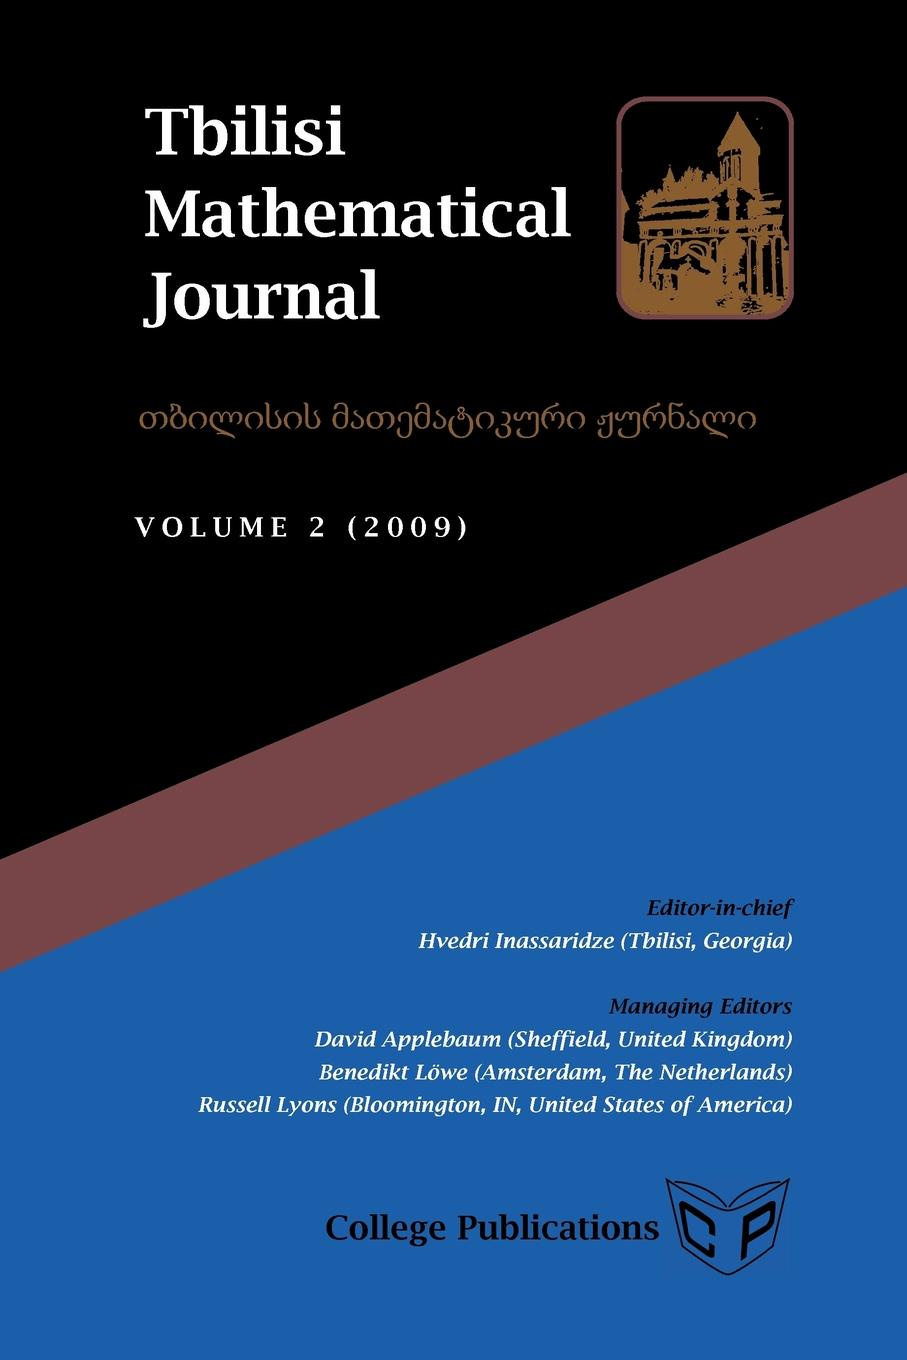 Tbilisi Mathematical Journal Volume 2 (2009) reports of the survey botanical series volume 9